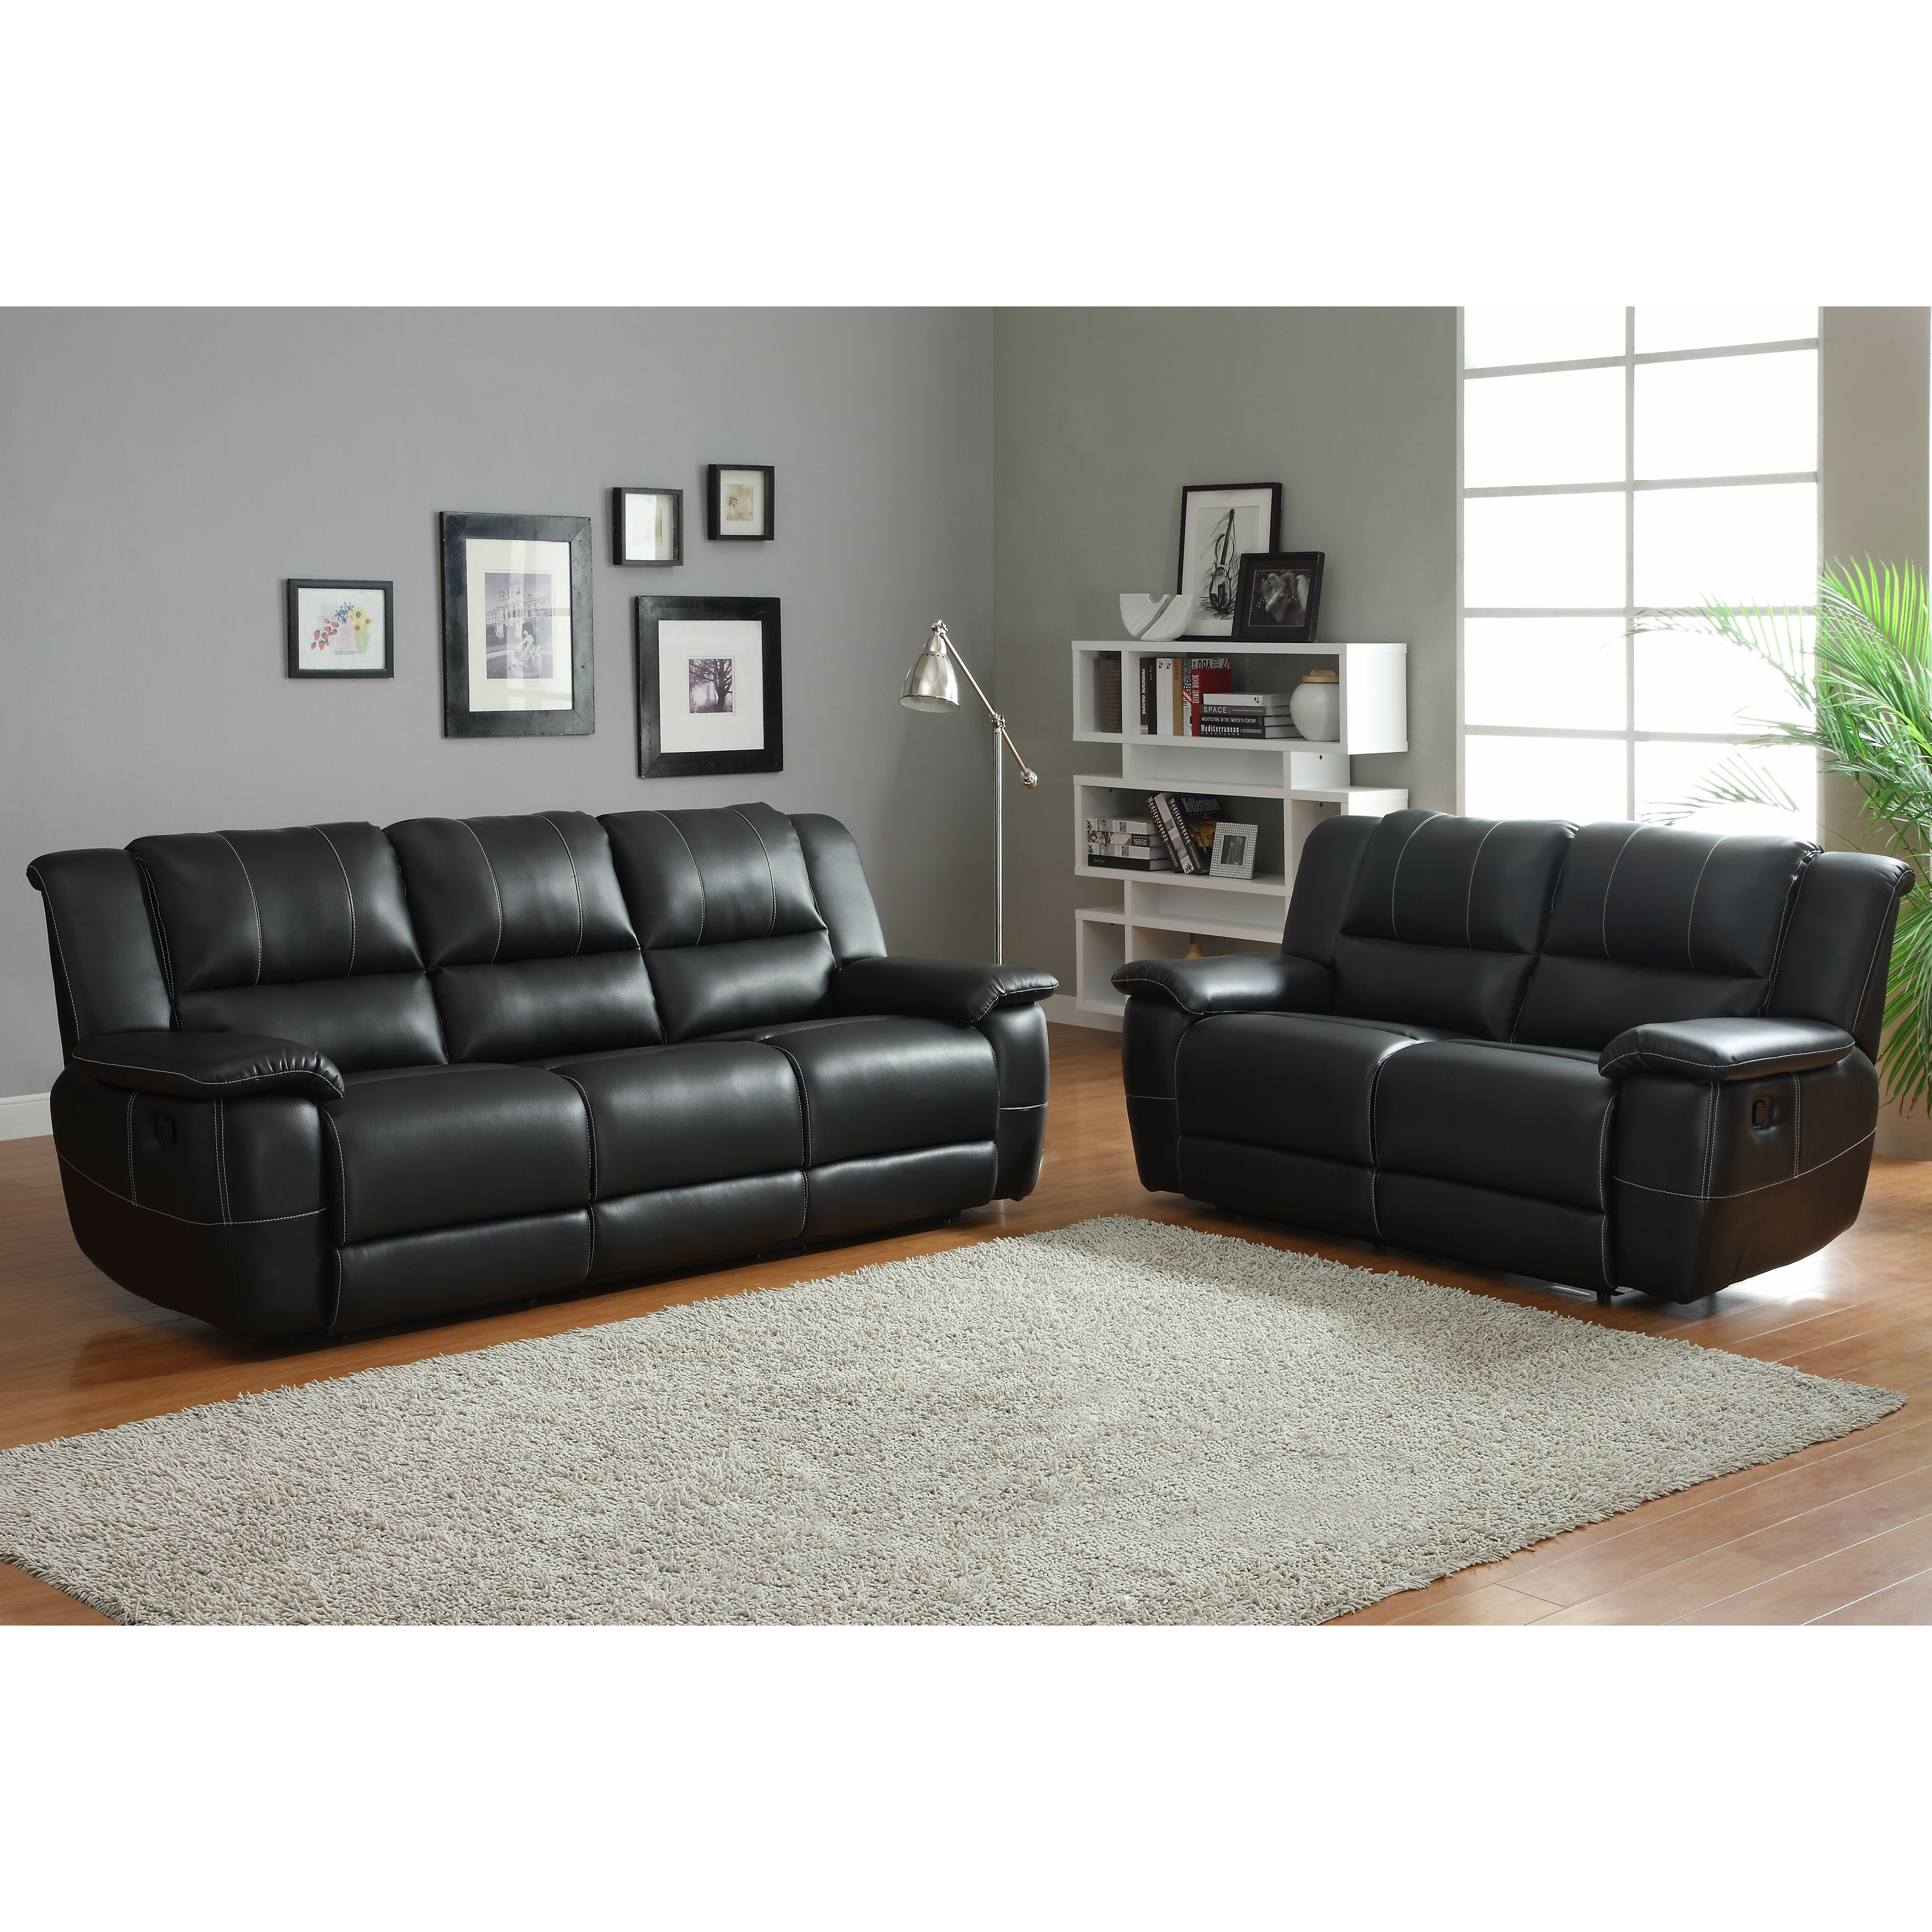 Woodbridge Home Designs Furniture Review Cantrell Double Reclining Loveseat Wayfair